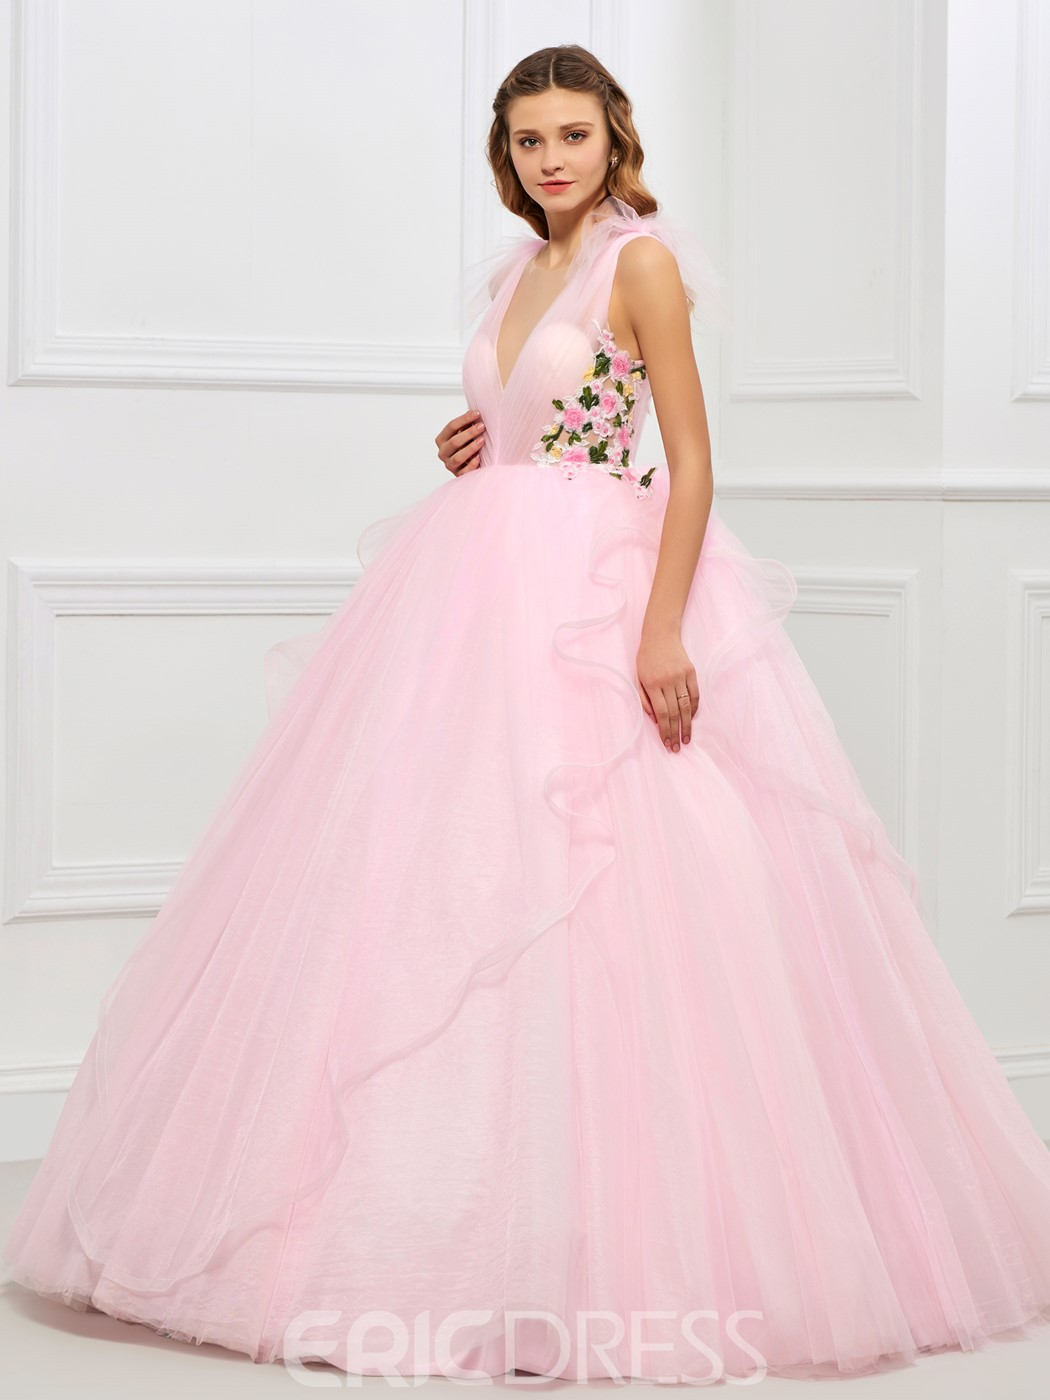 Ericdress Deep Neck Embroidery Applique Tulle Button Back Ball Quinceanera Gown